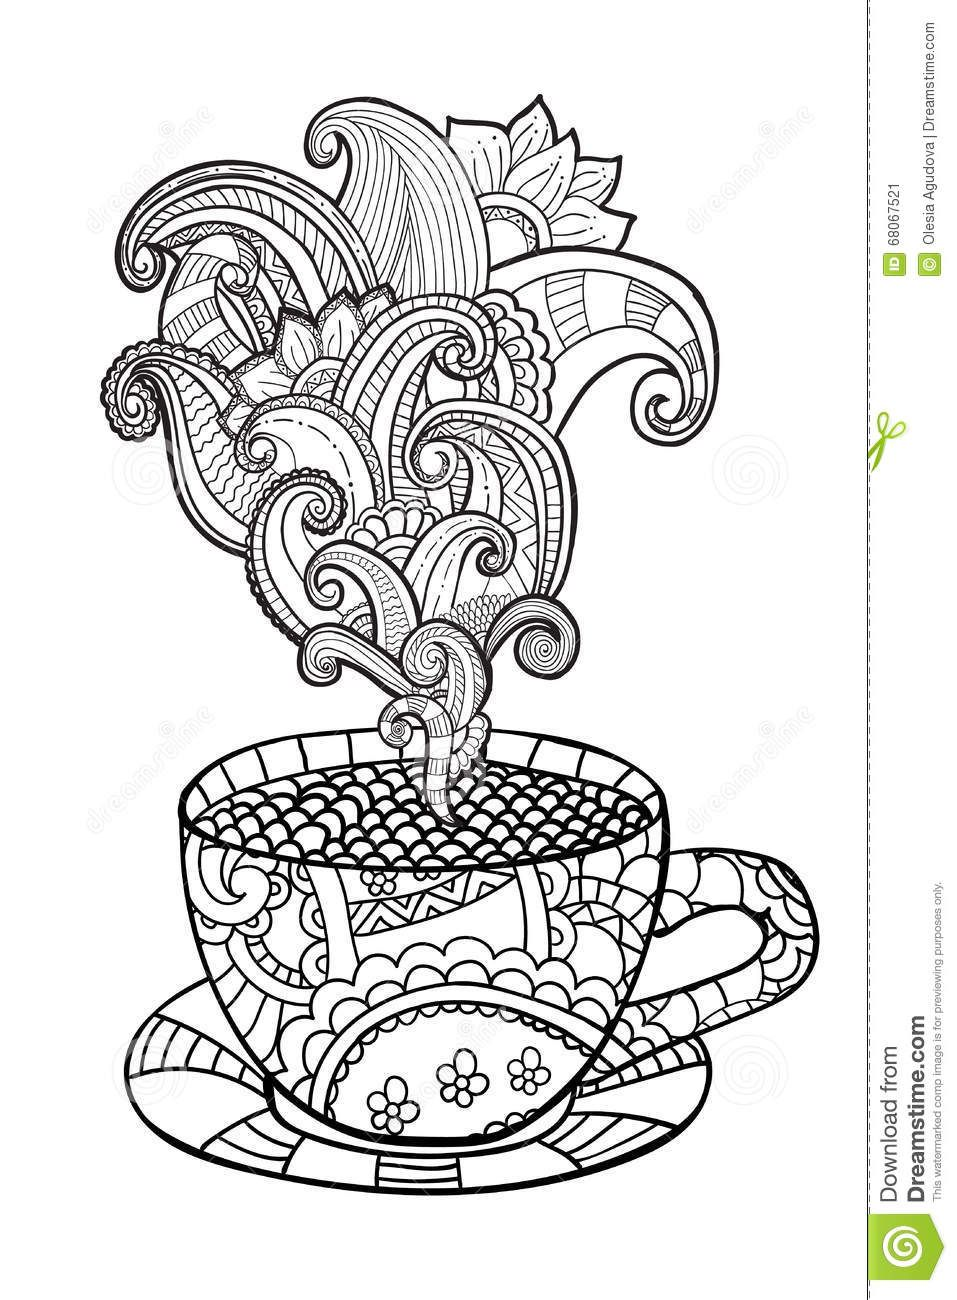 Photo About Vector Coffee Or Tea Cup With Abstract Ornaments Hand Drawn Illustration In Zentangle Style For Coloring Book Adult Pages